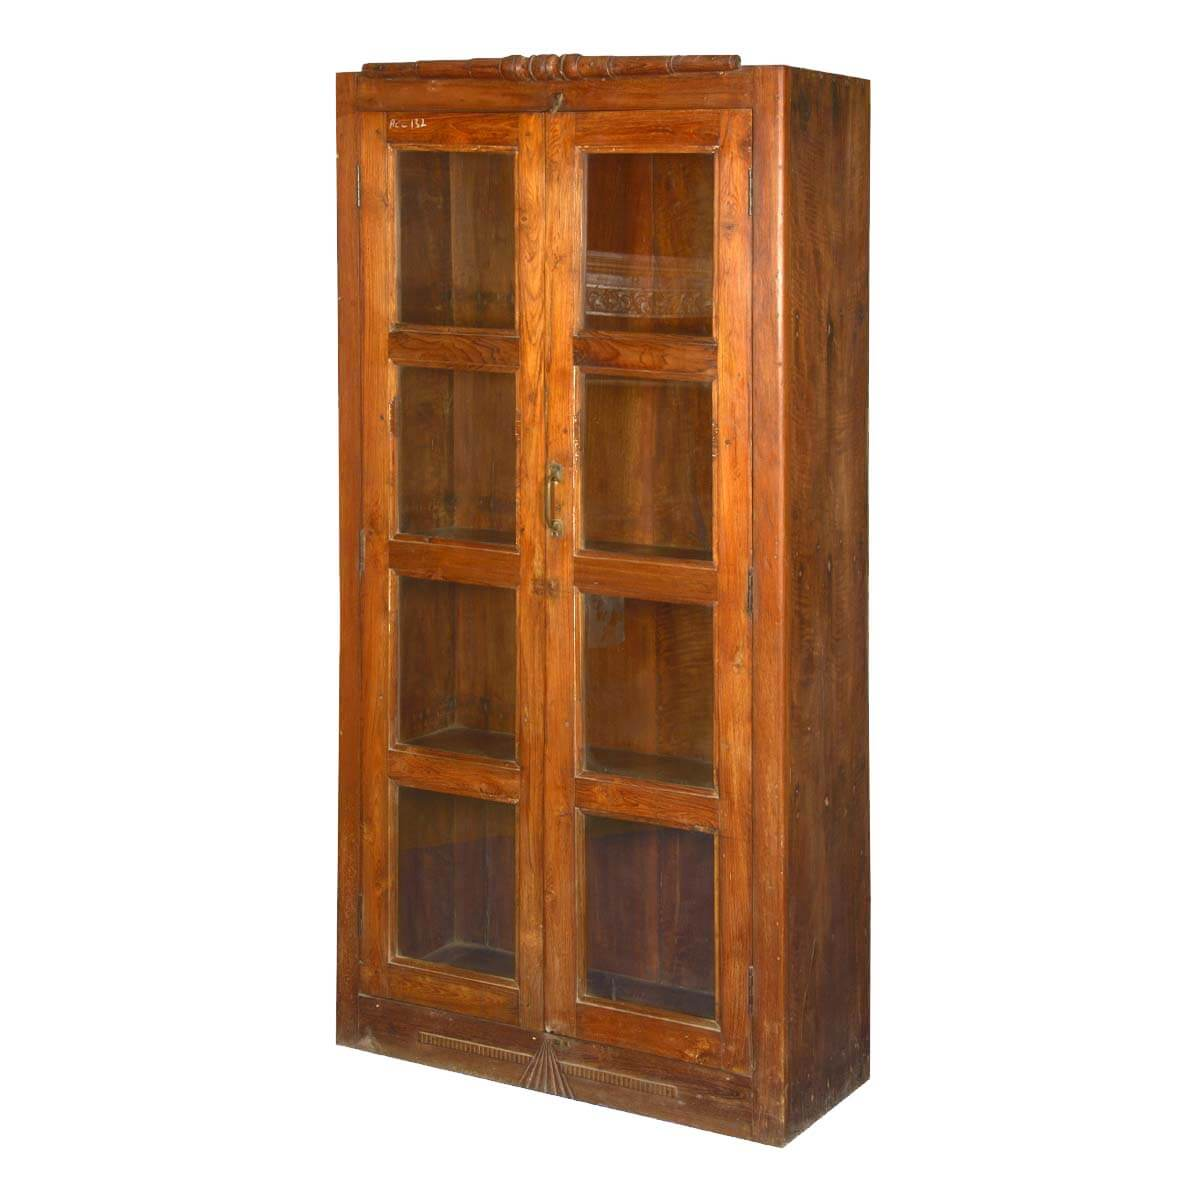 Reclaimed Wood Display Cabinet 1200 x 1200